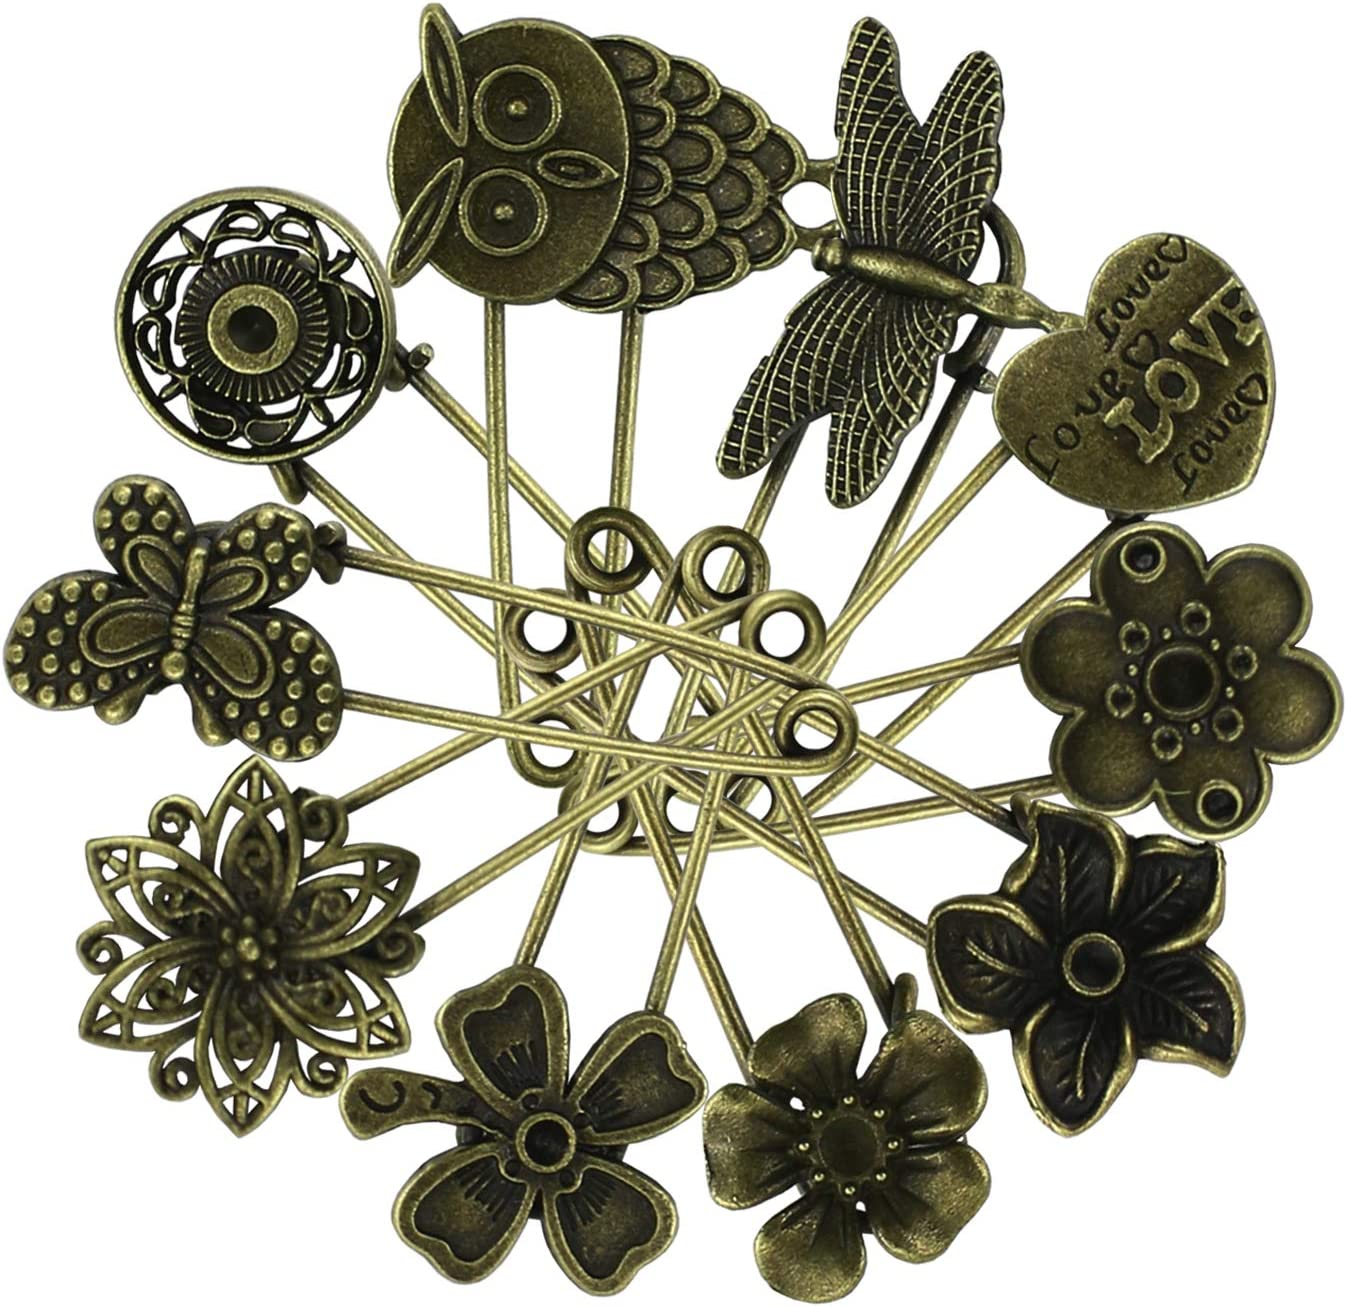 BROOCH SAFTY PINS HIJAB AND SCARF PINS PACK OF 12 TO 24 EACH PACK HAVE 6 PCS